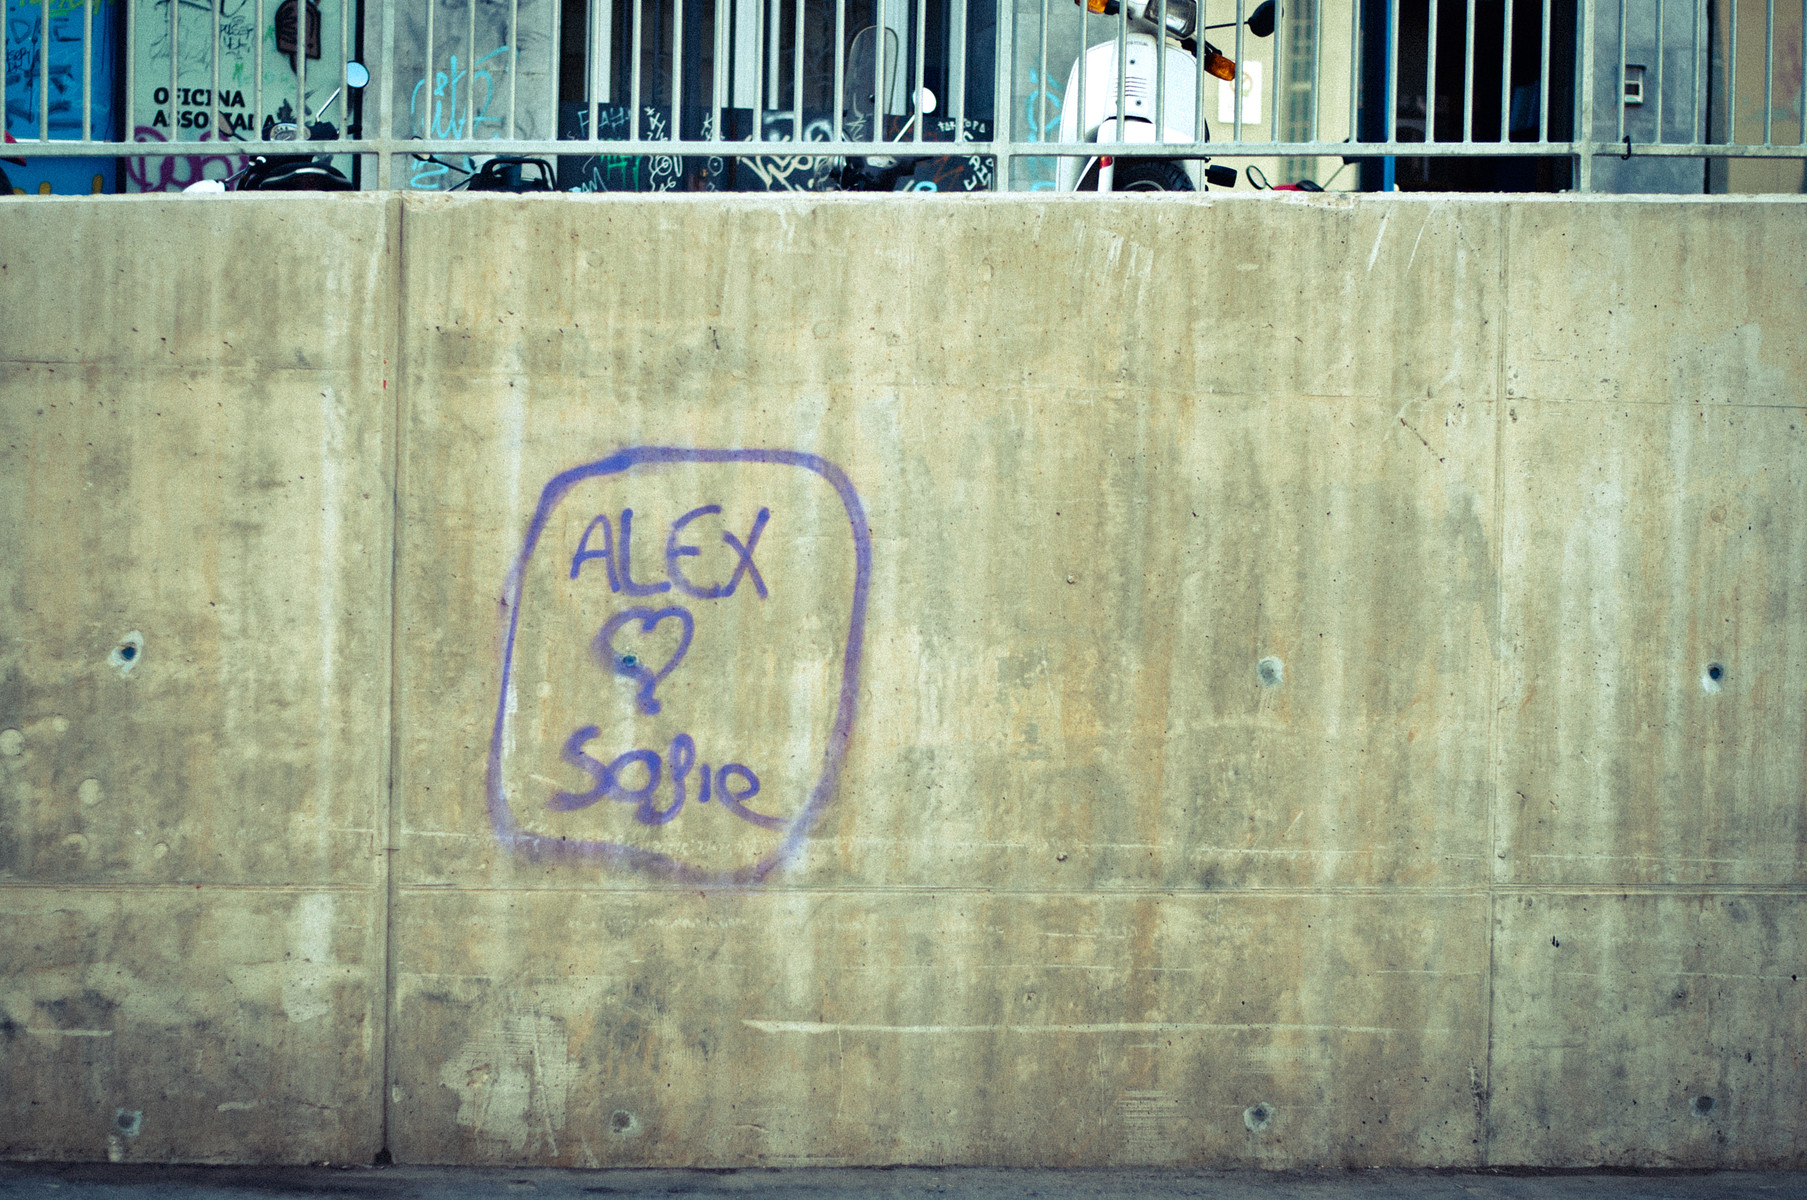 ...but does sofie <3 Alex?